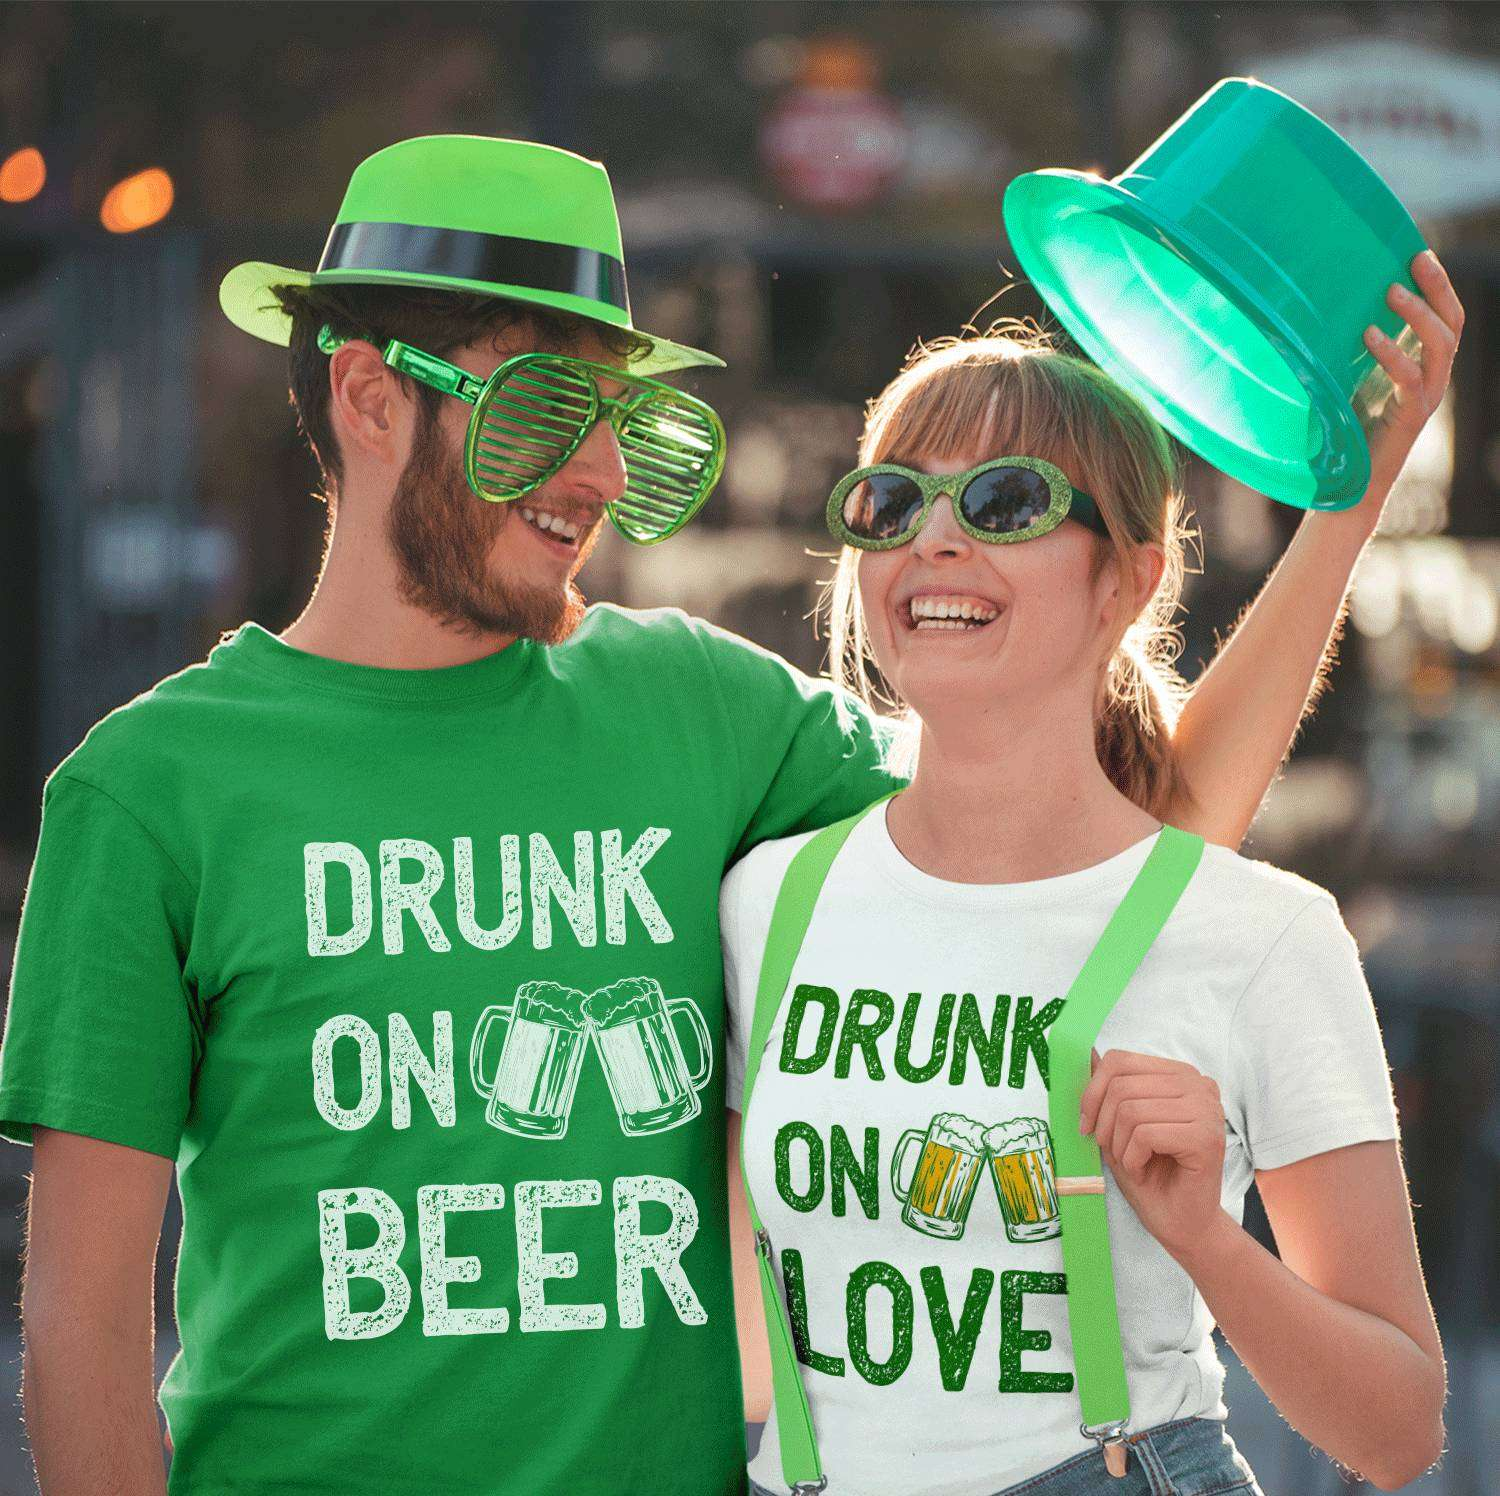 62ffa4c00 Drinking Couple Shirts, Drunk on Beer, Drunk on Love, St. Patrick's Day  Shirts